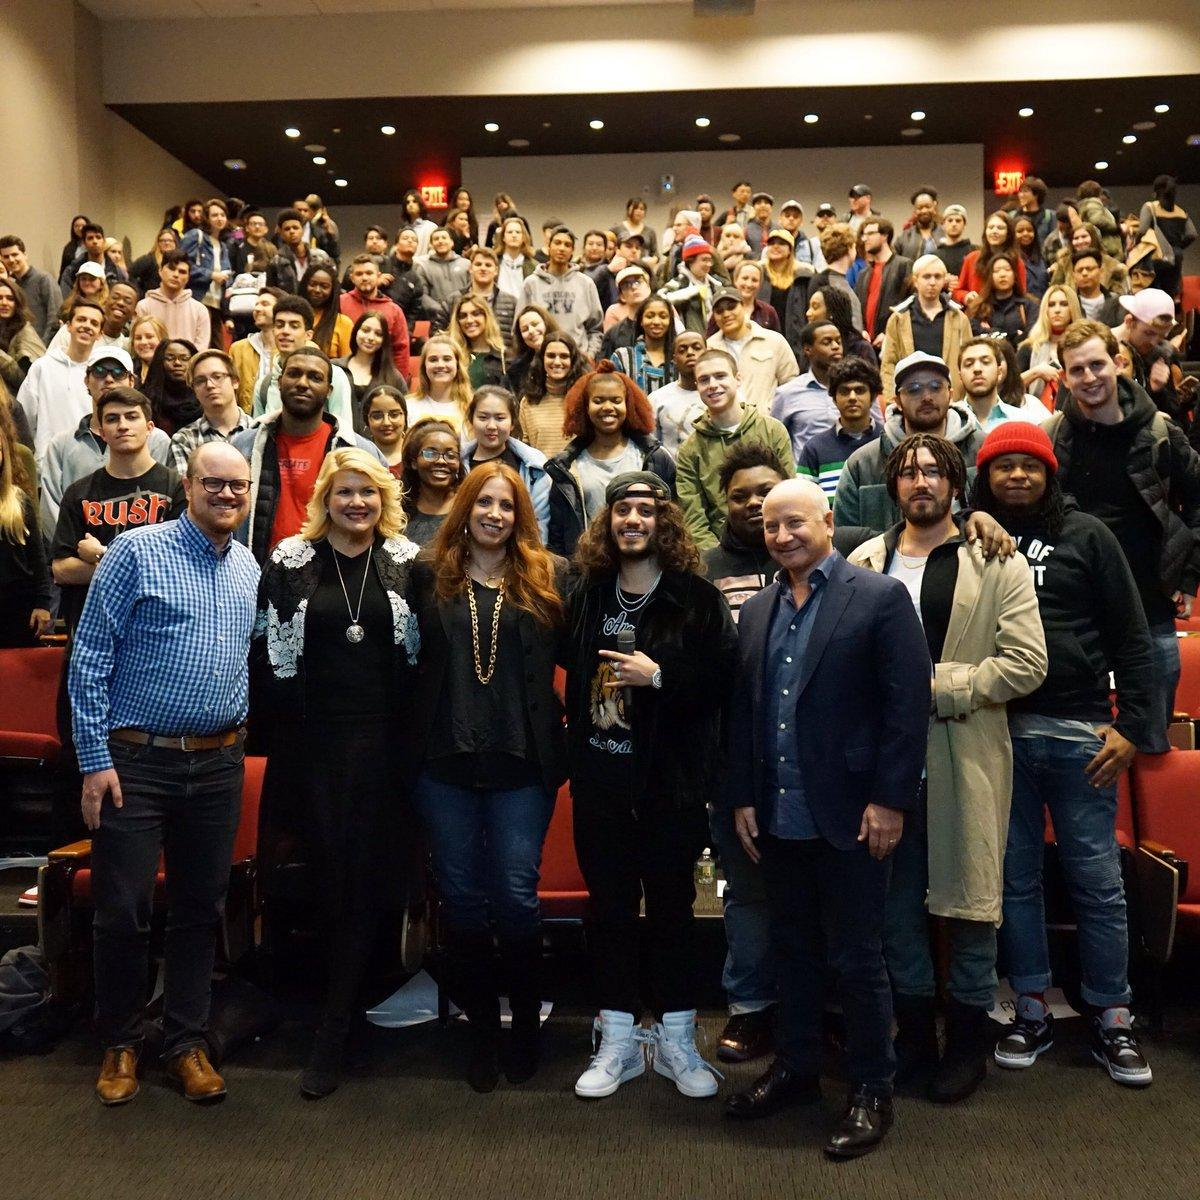 Students and faculty who attended Steinhardt's Q&A with DIY rapper Russ pose for a photo following the one-hour session.